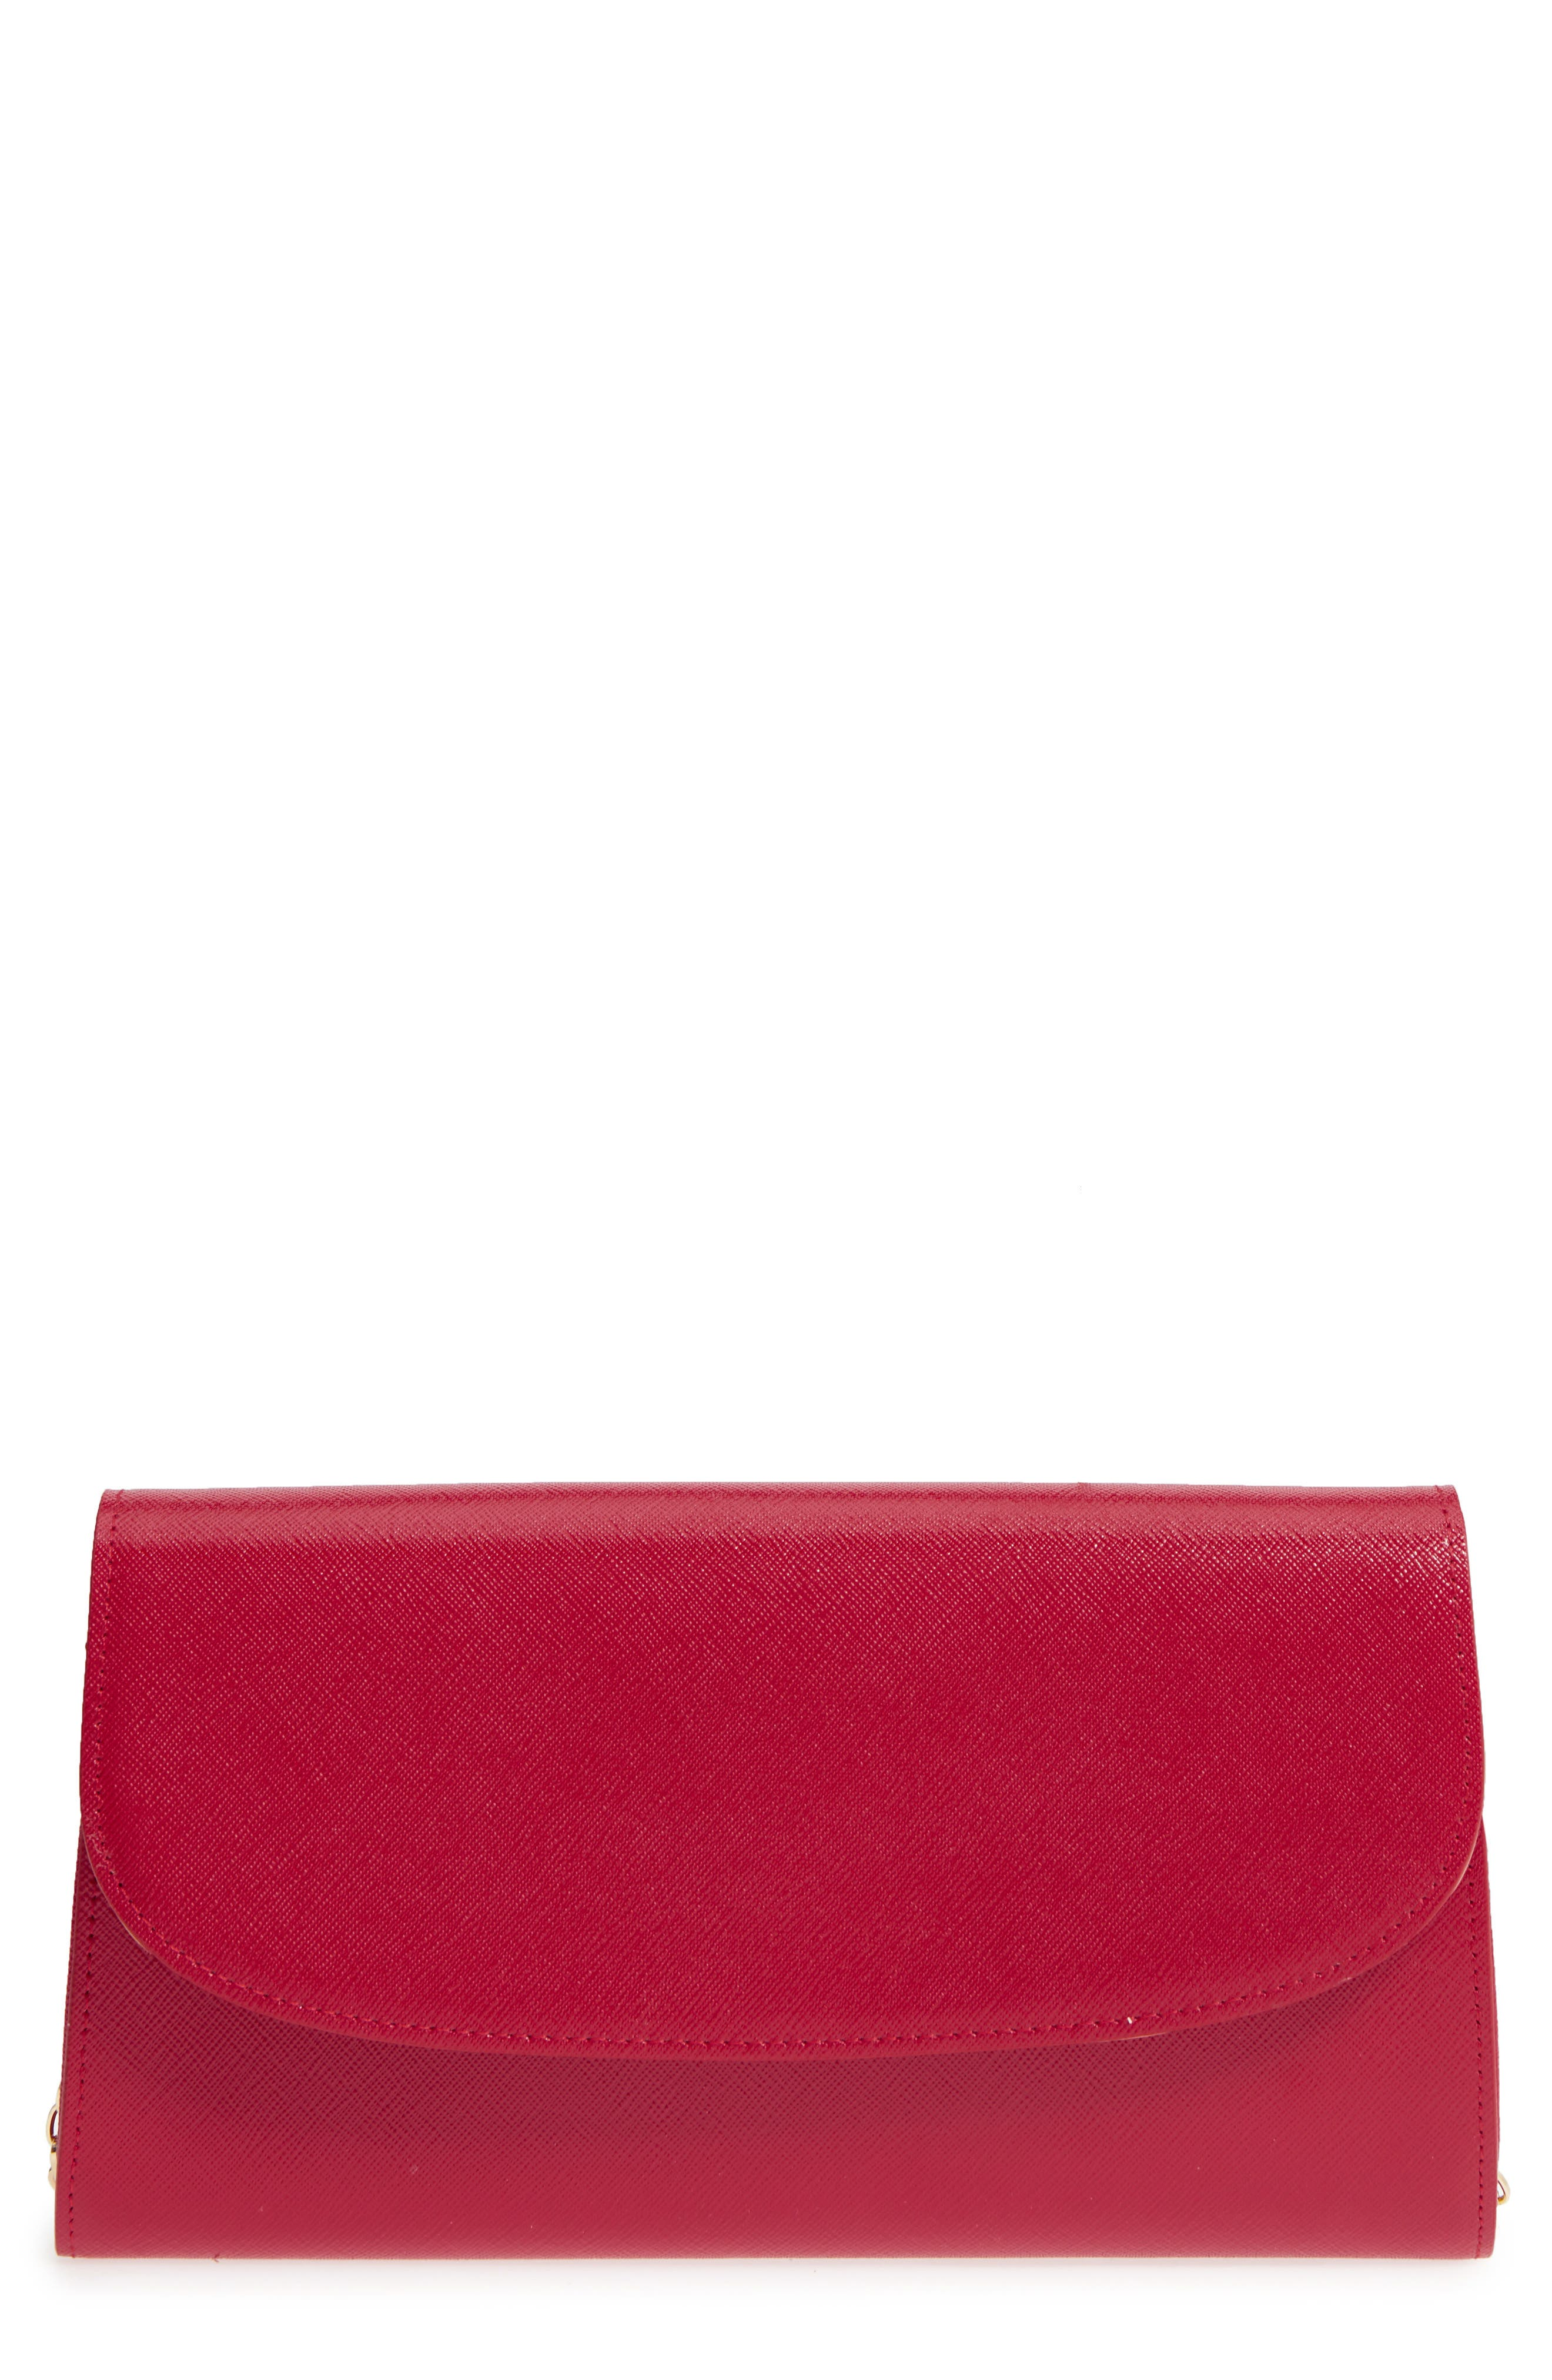 Leather Clutch,                         Main,                         color, RED JESTER